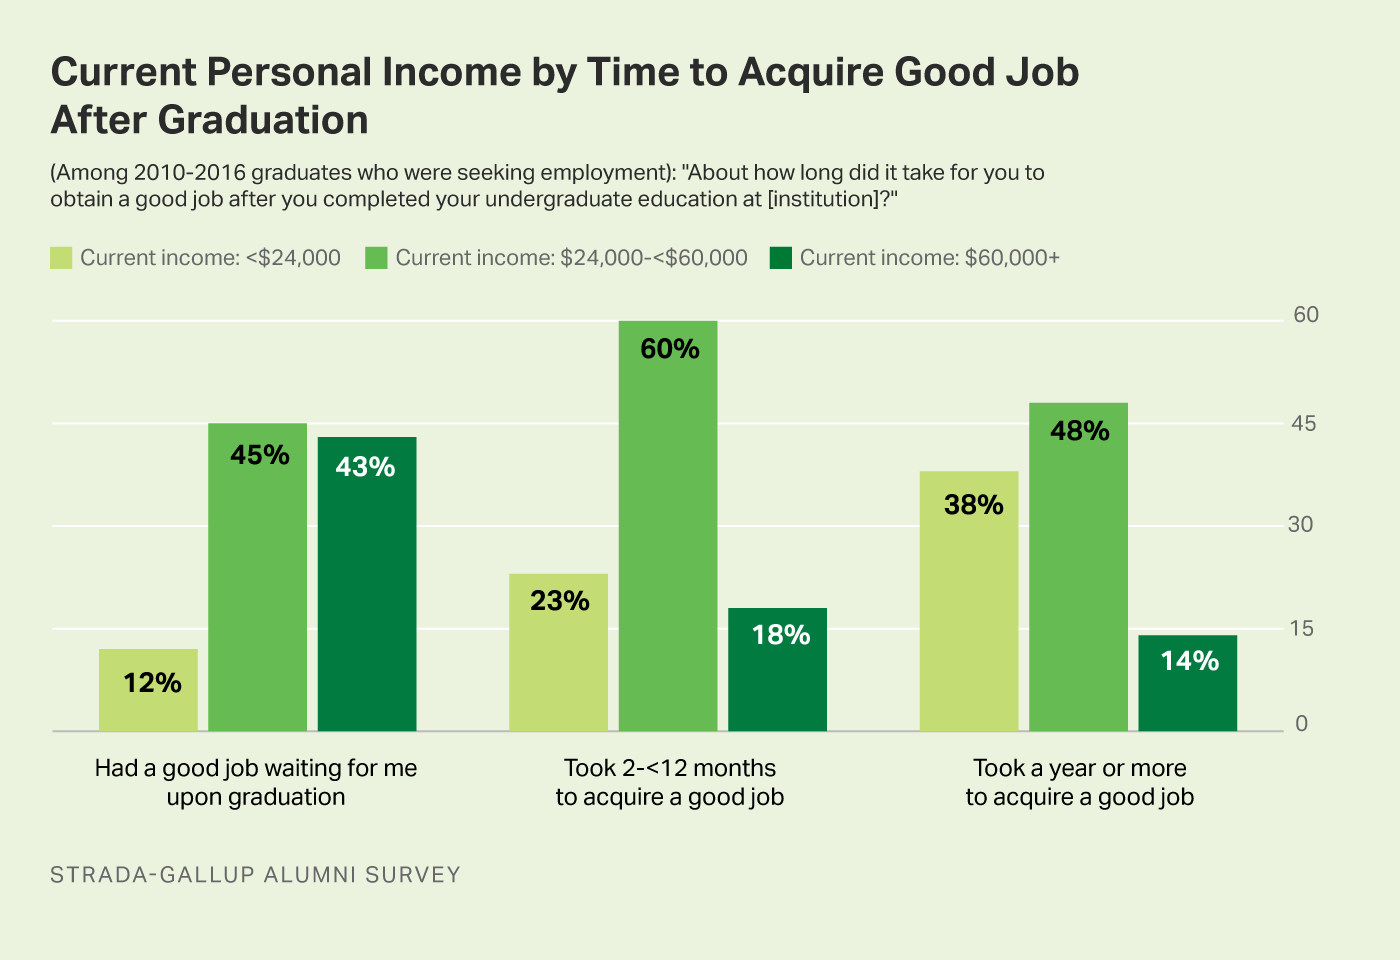 Bar graph. College graduates who had a good job waiting for them at graduation earned more than those who did not have a good job waiting.